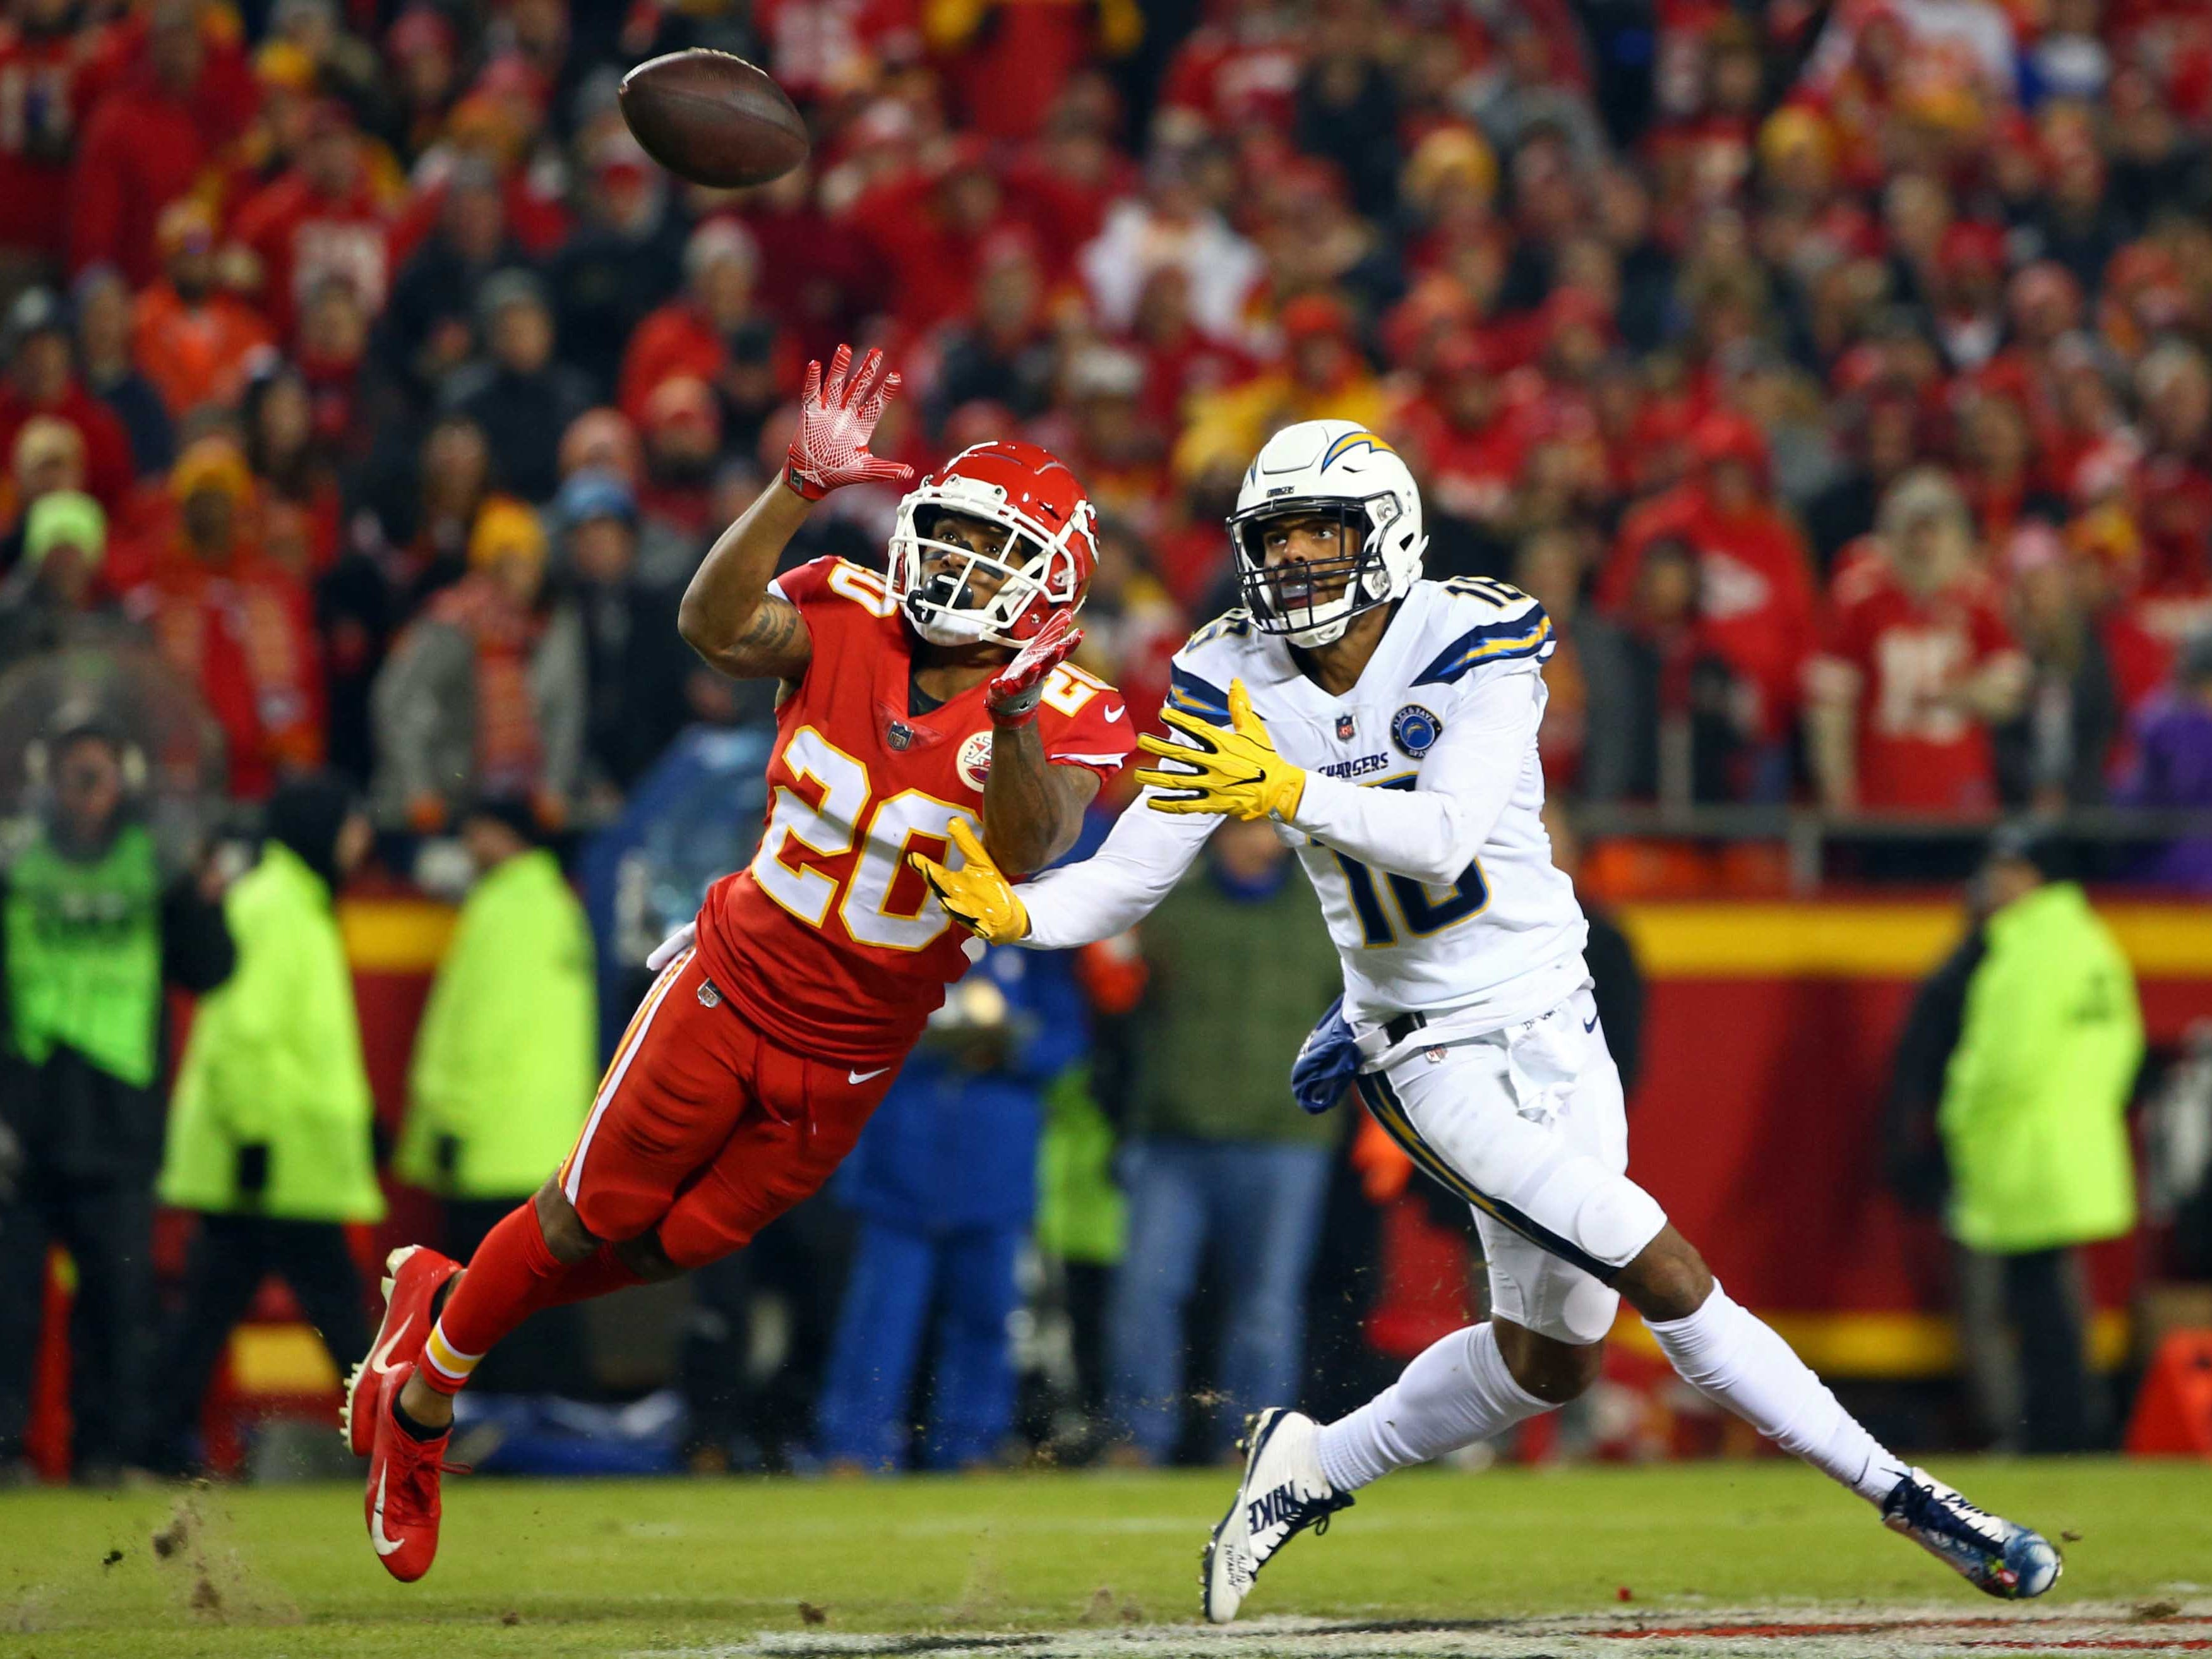 Kansas City Chiefs cornerback Steven Nelson (20) intercepts a pass intended for Los Angeles Chargers wide receiver Tyrell Williams (16) in the first half at Arrowhead Stadium.